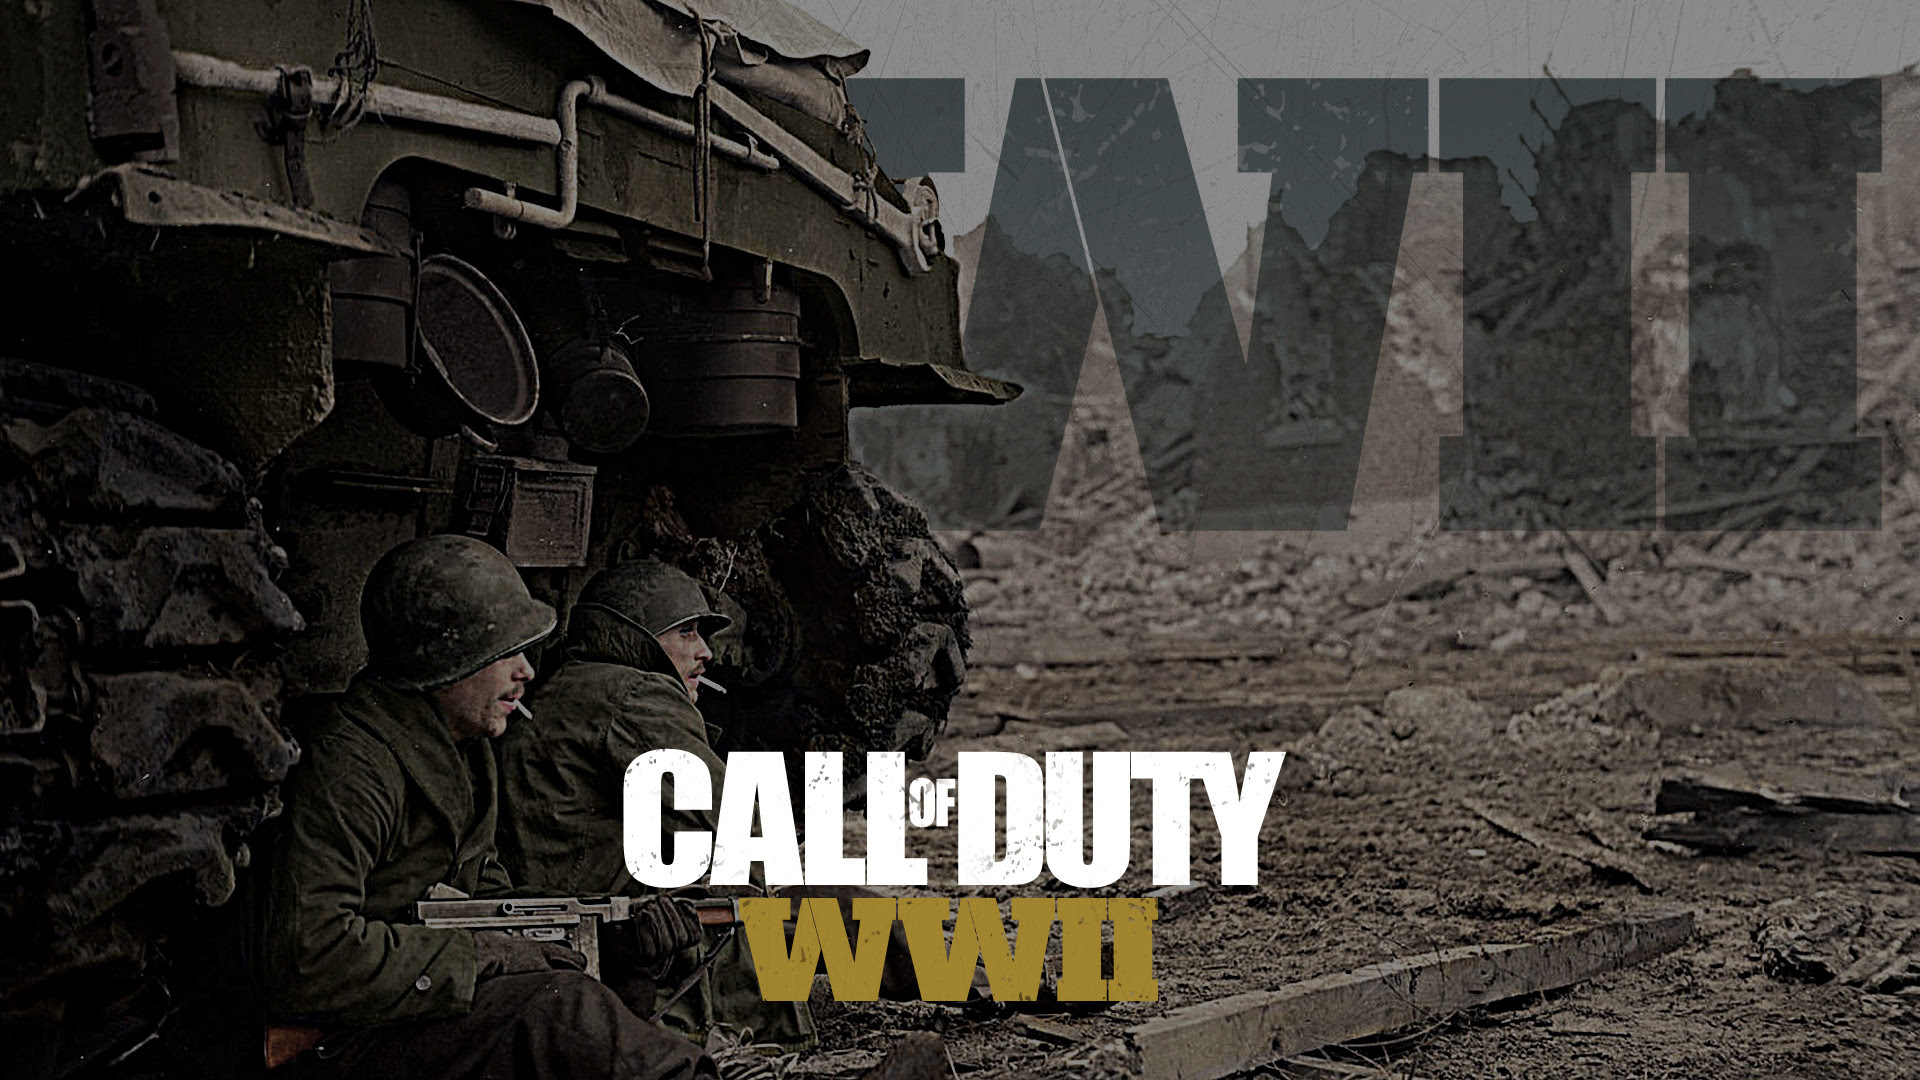 Ww2 Wallpaper Images 71 Images